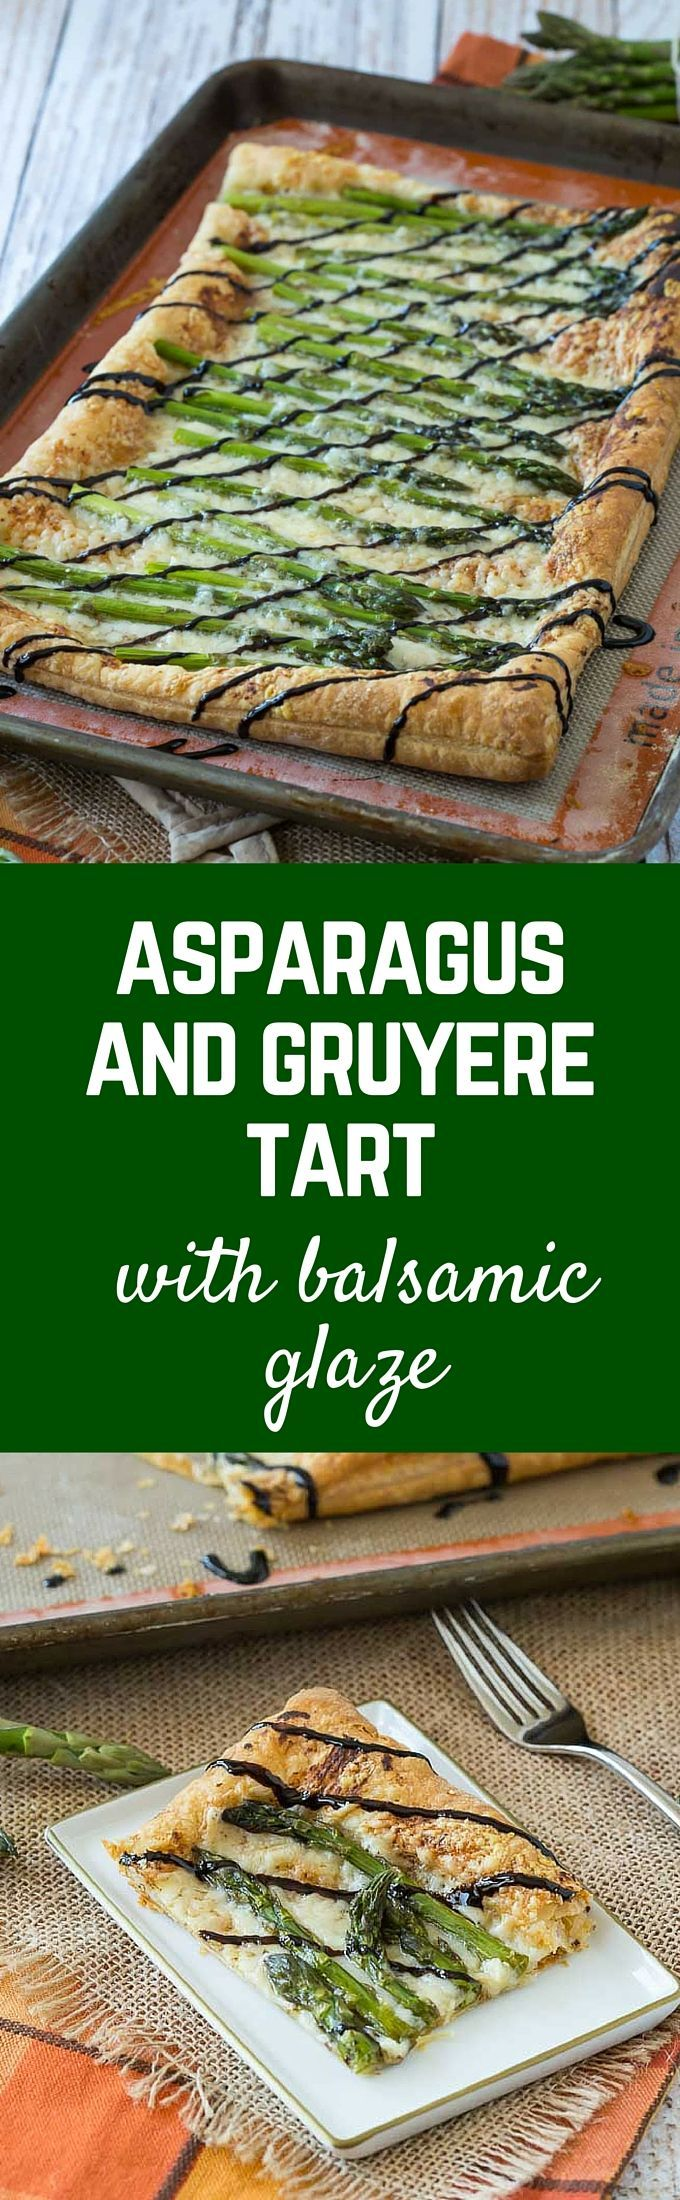 Asparagus Gruy�re Tart With Balsamic Glaze